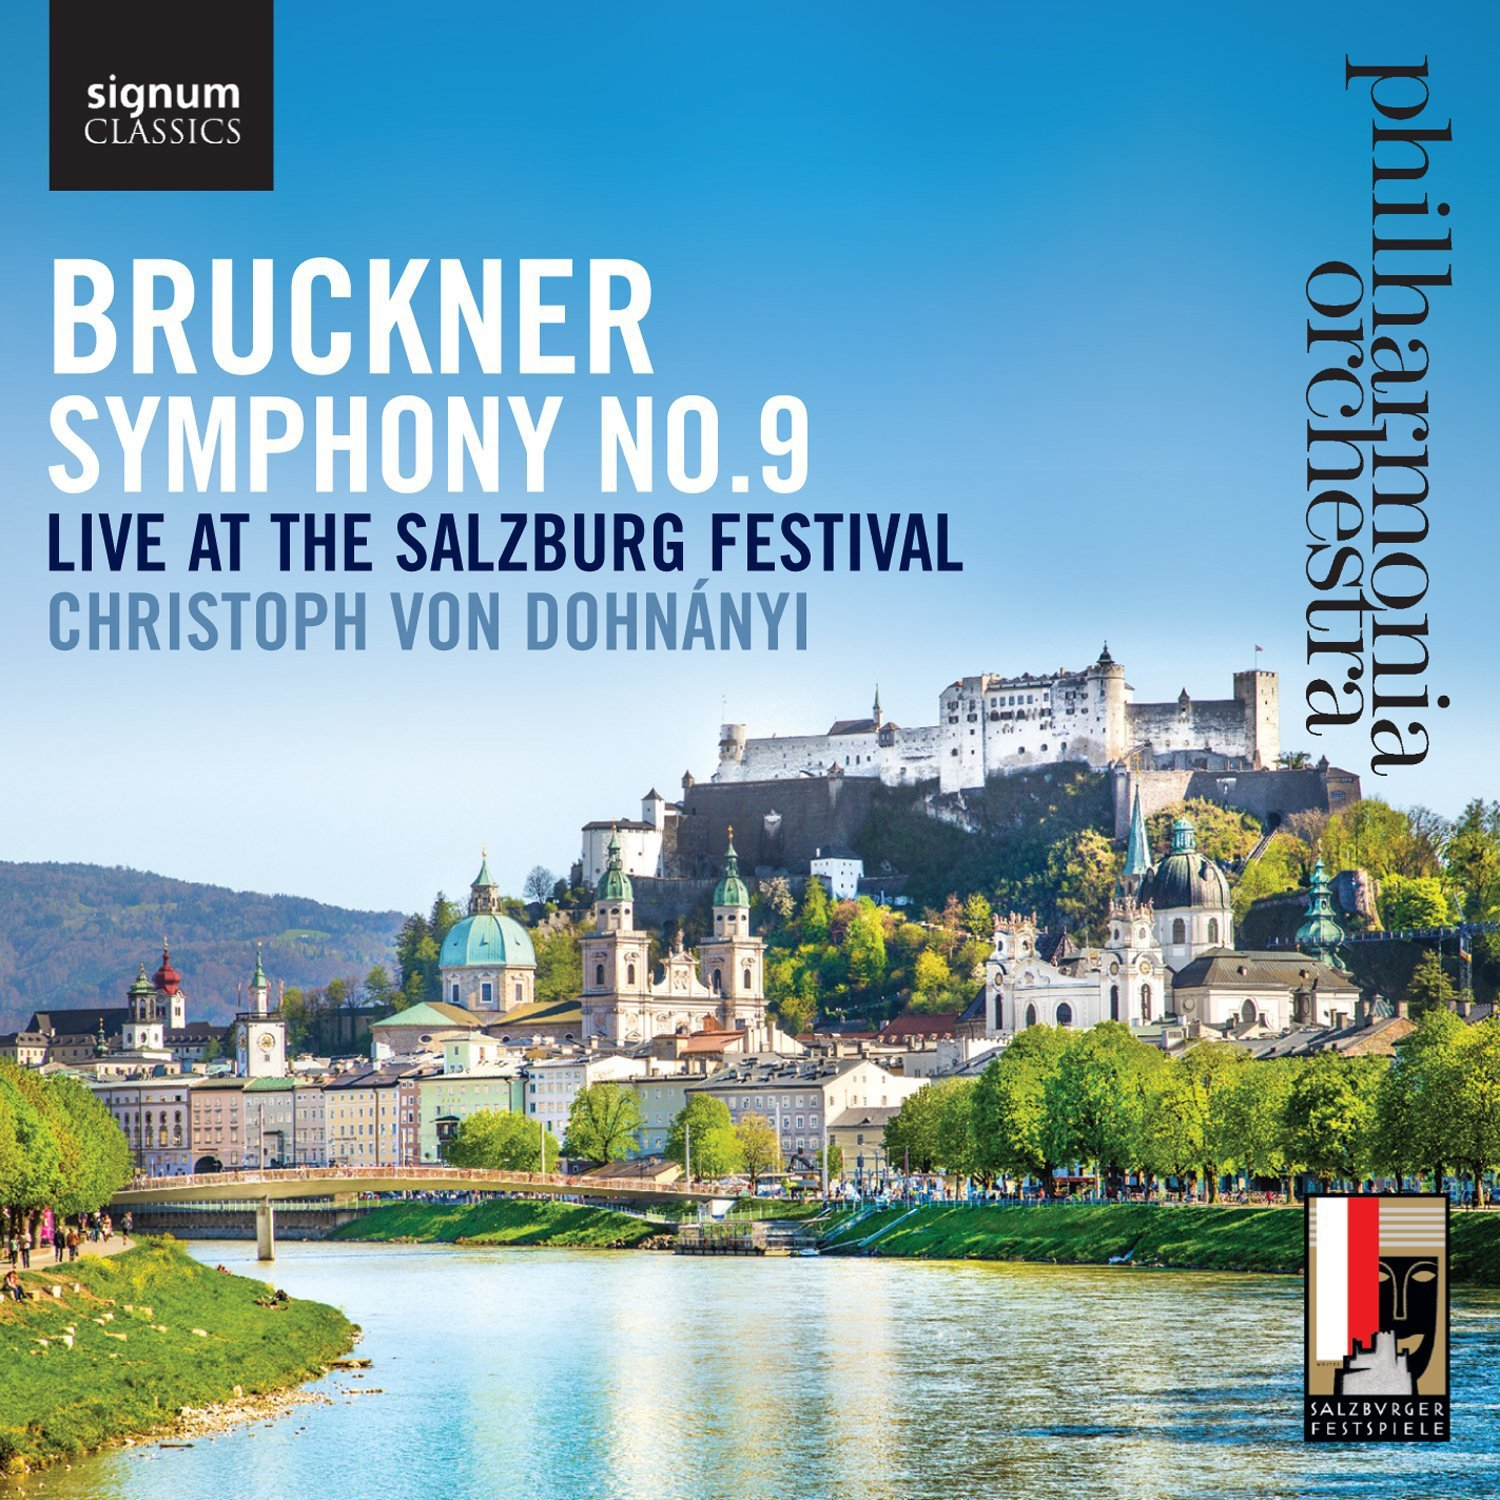 Bruckner: Symphony No. 9, Live at the Salzburg Festival